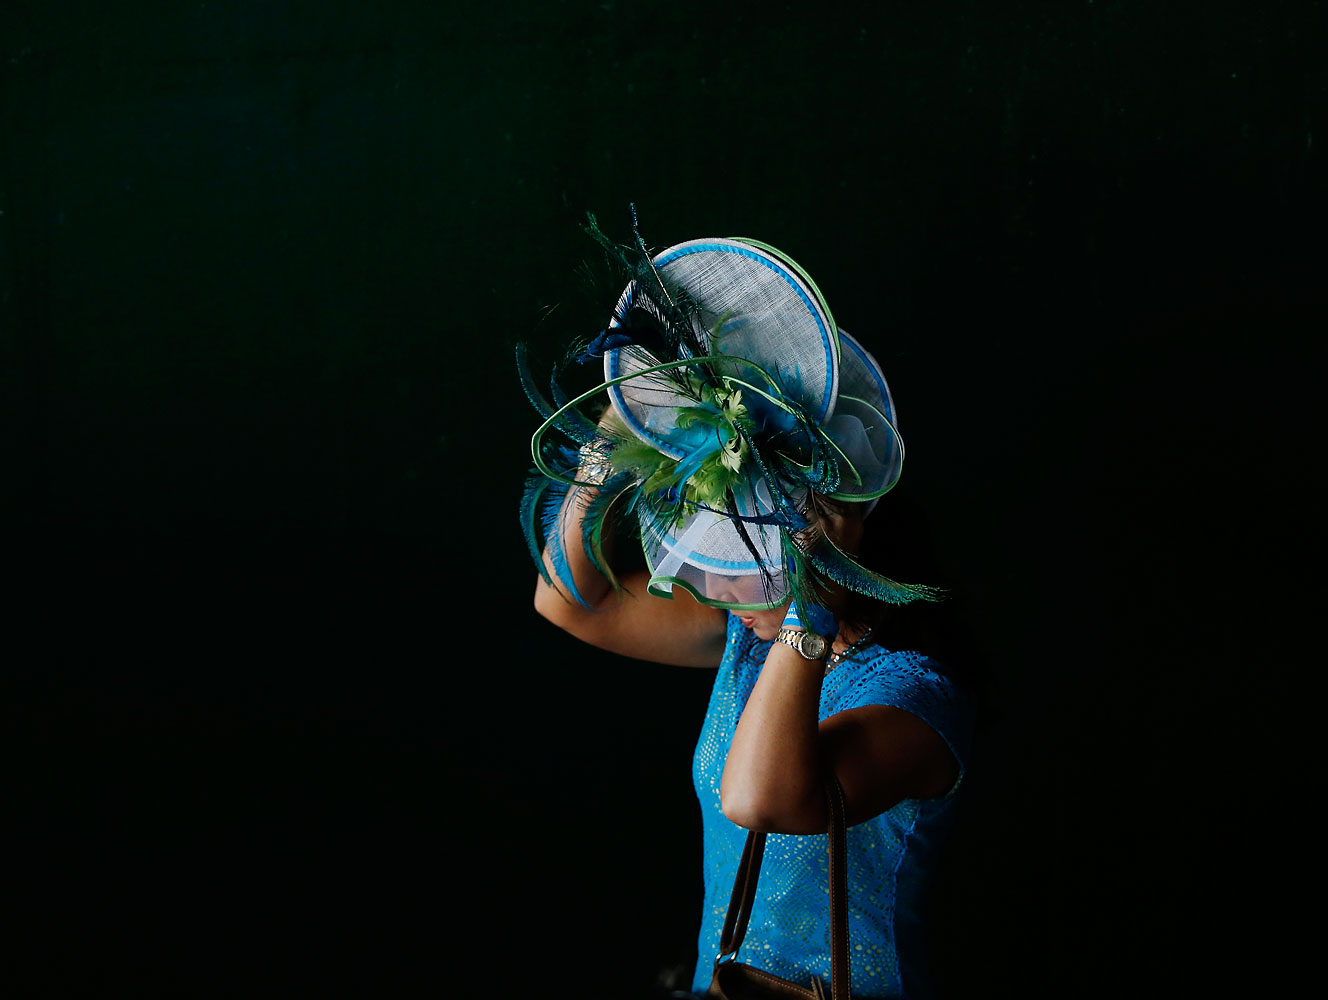 A woman fixes her Derby hat while headed to the track before the 2014 Kentucky Derby.